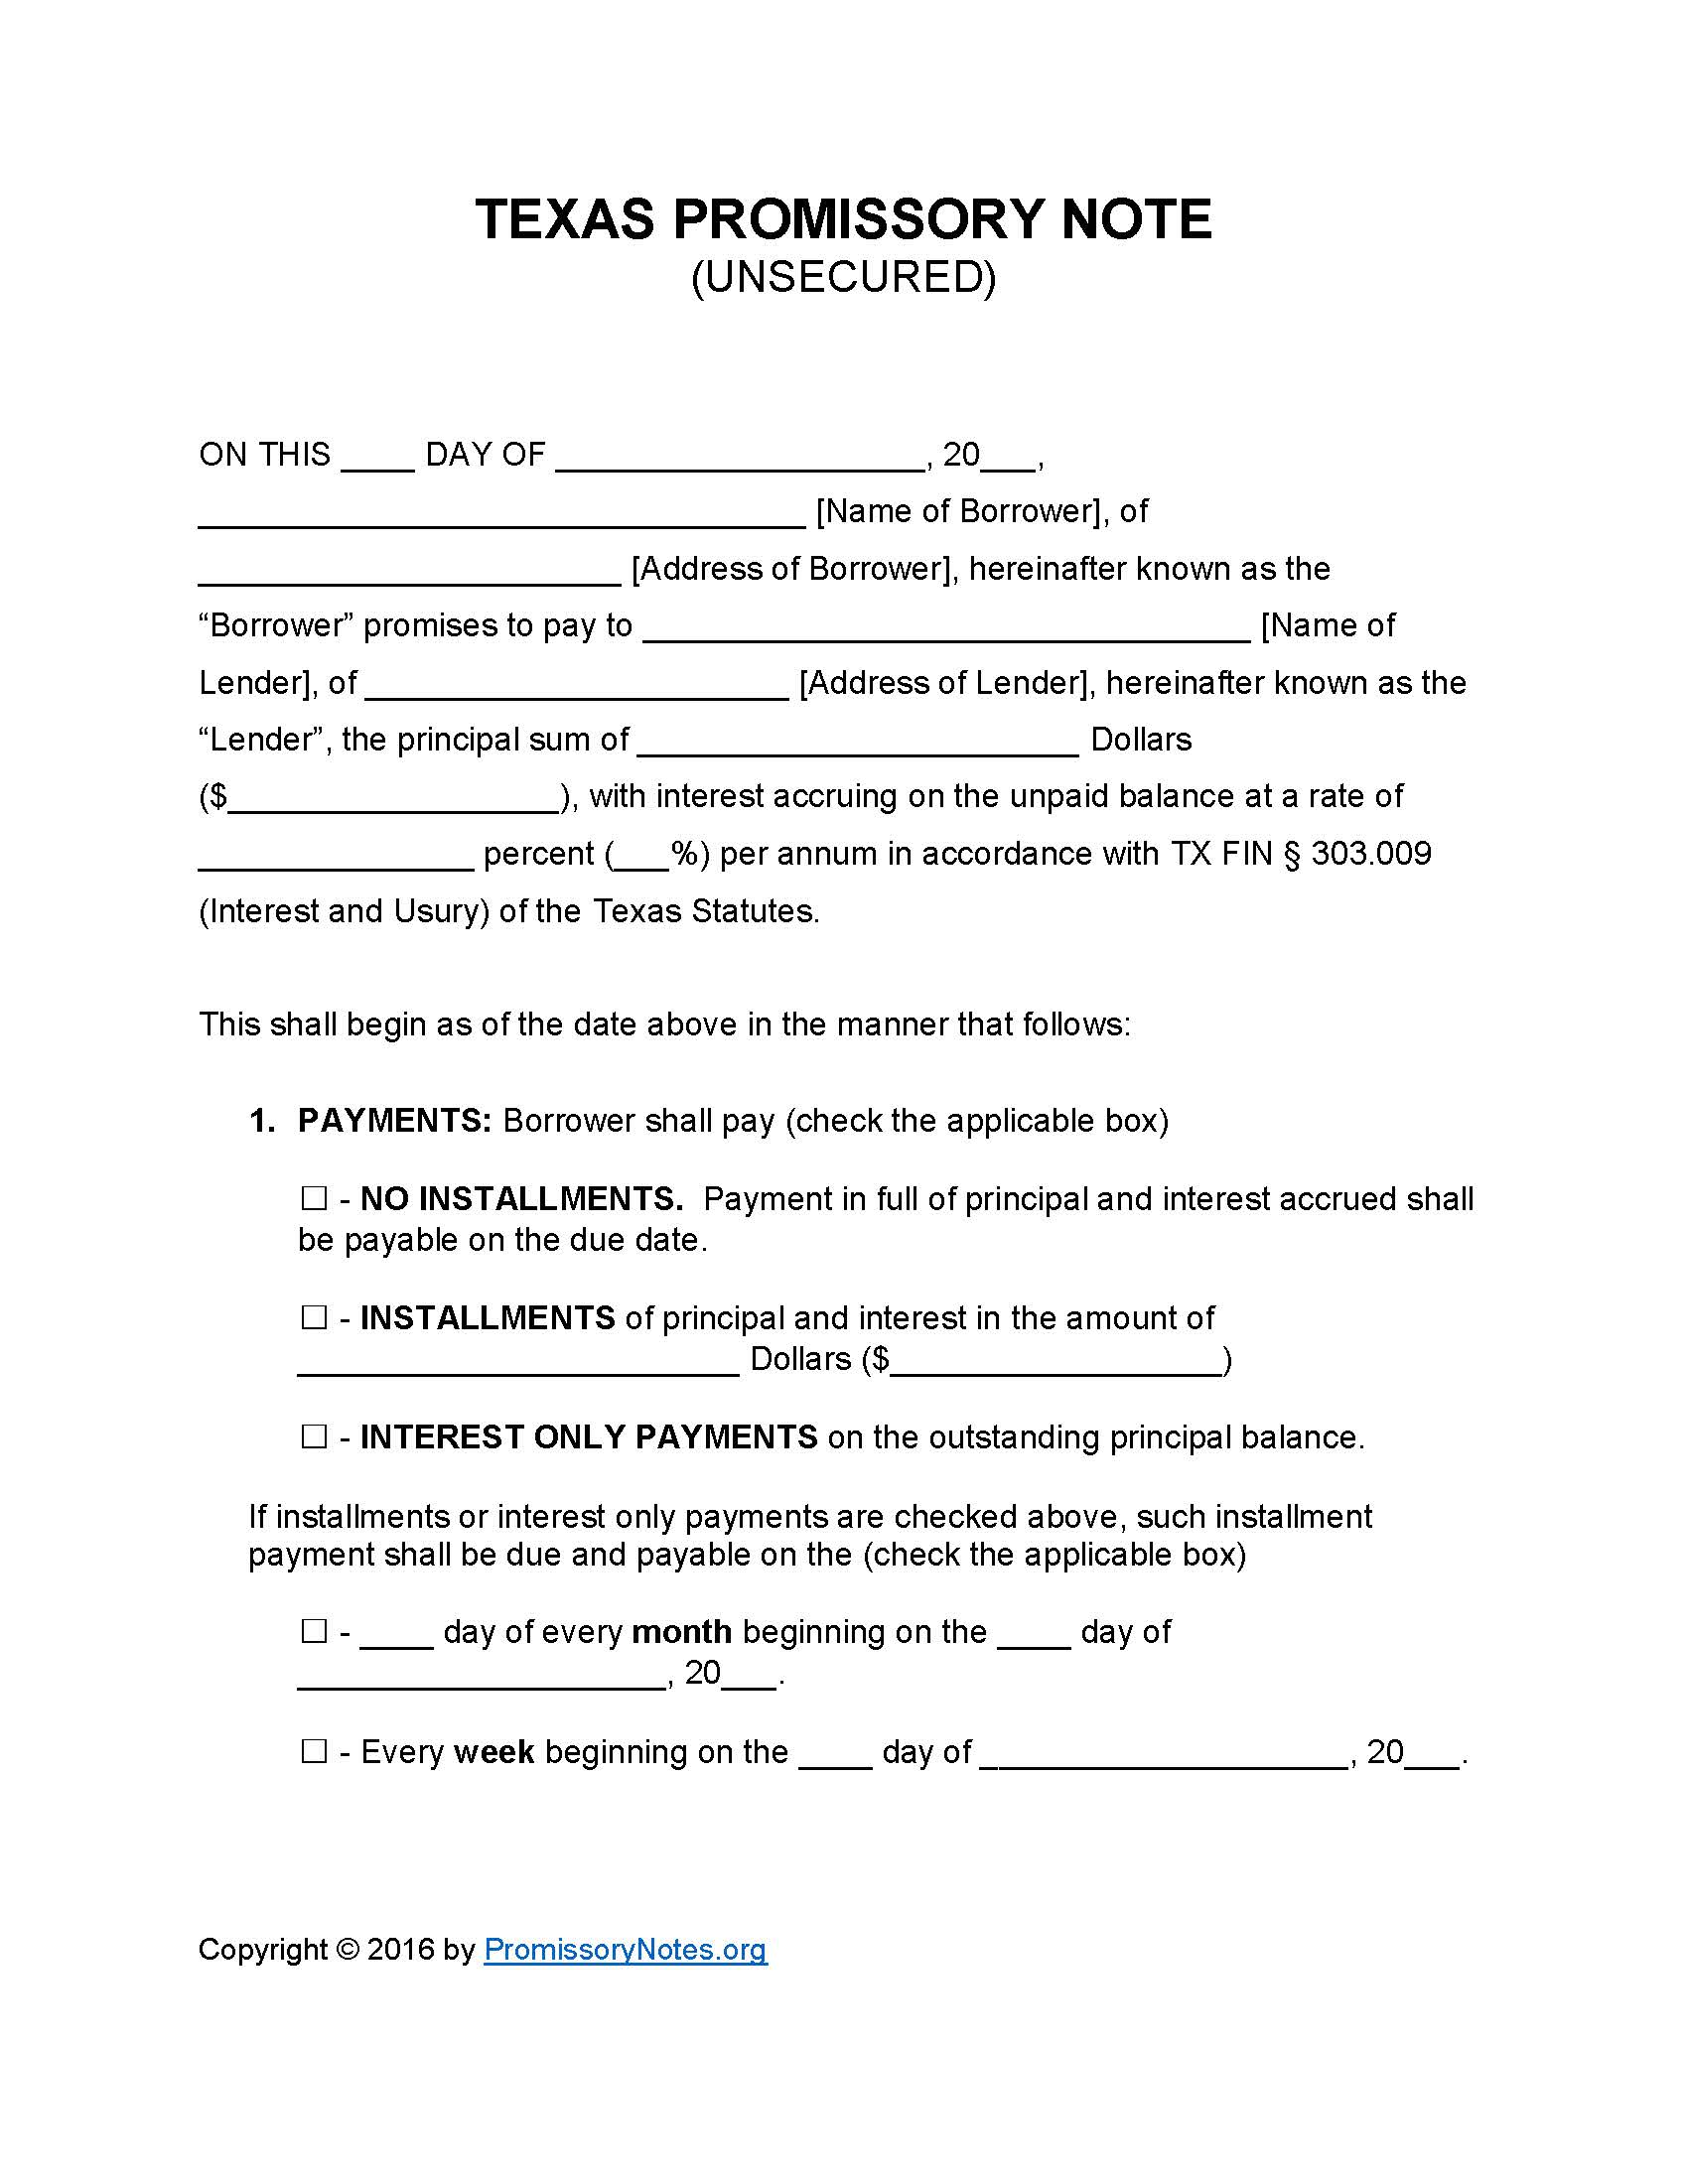 Texas Unsecured Promissory Note Template   Promissory Notes : Promissory  Notes  Draft Of Promissory Note